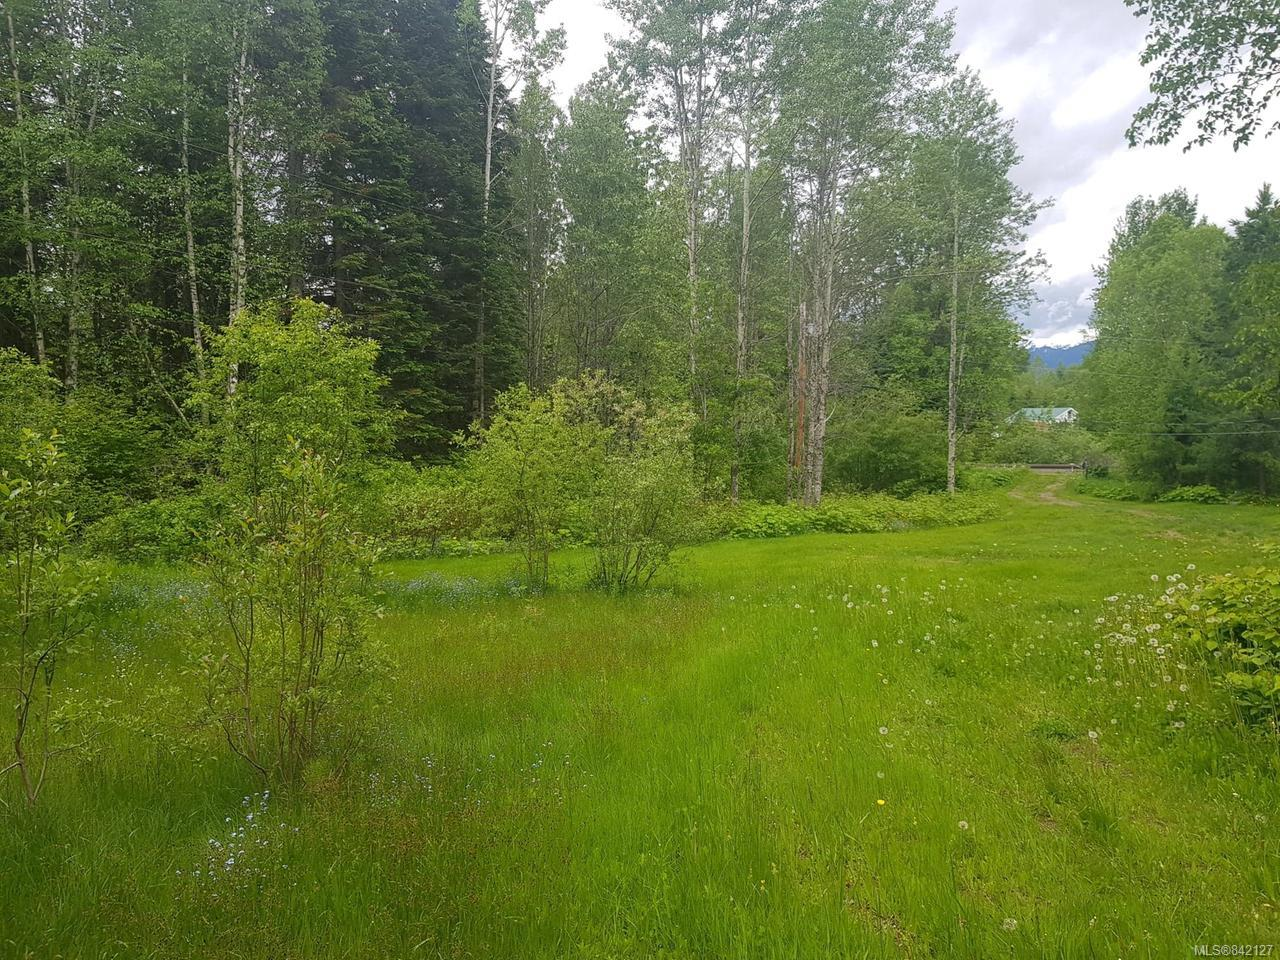 FEATURED LISTING: 90 Longworth Gravel Pit Rd PRINCE GEORGE